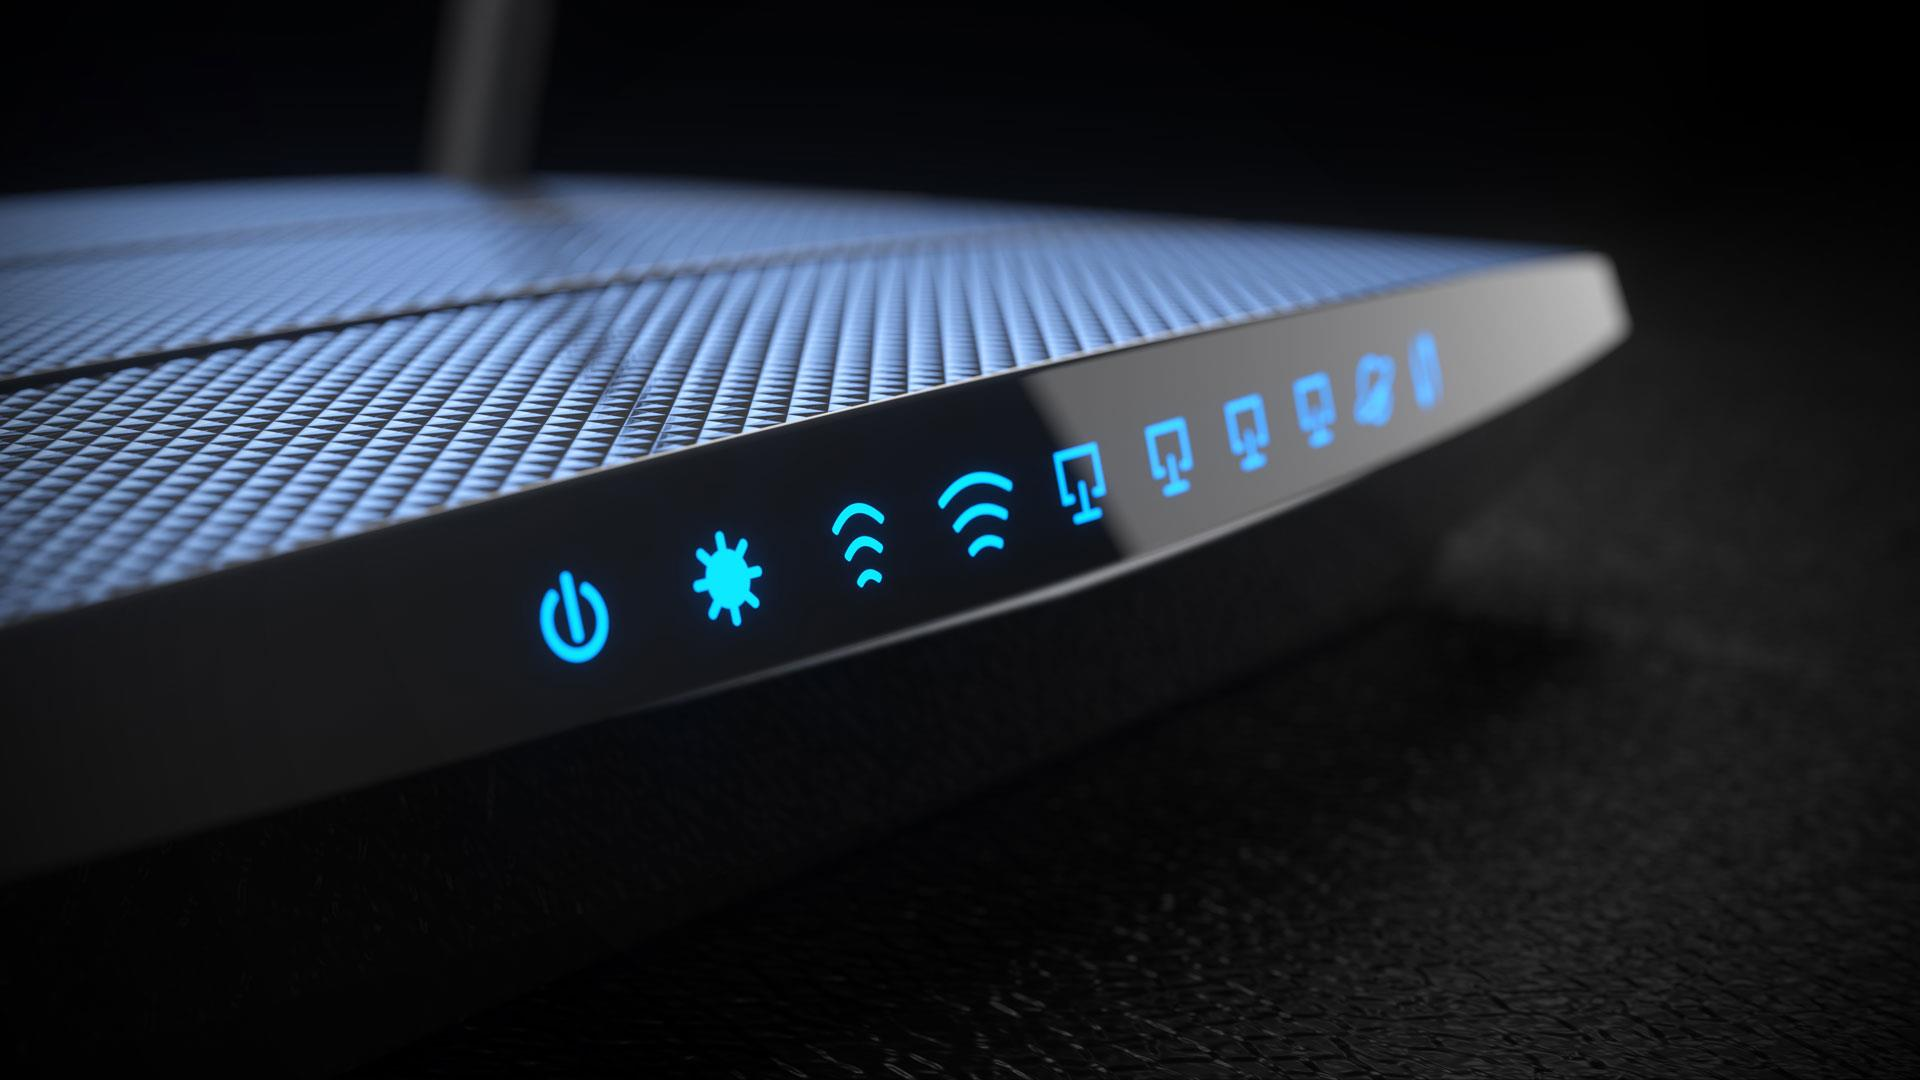 FBI warns about Russia-linked malware threat to home routers, but questions linger